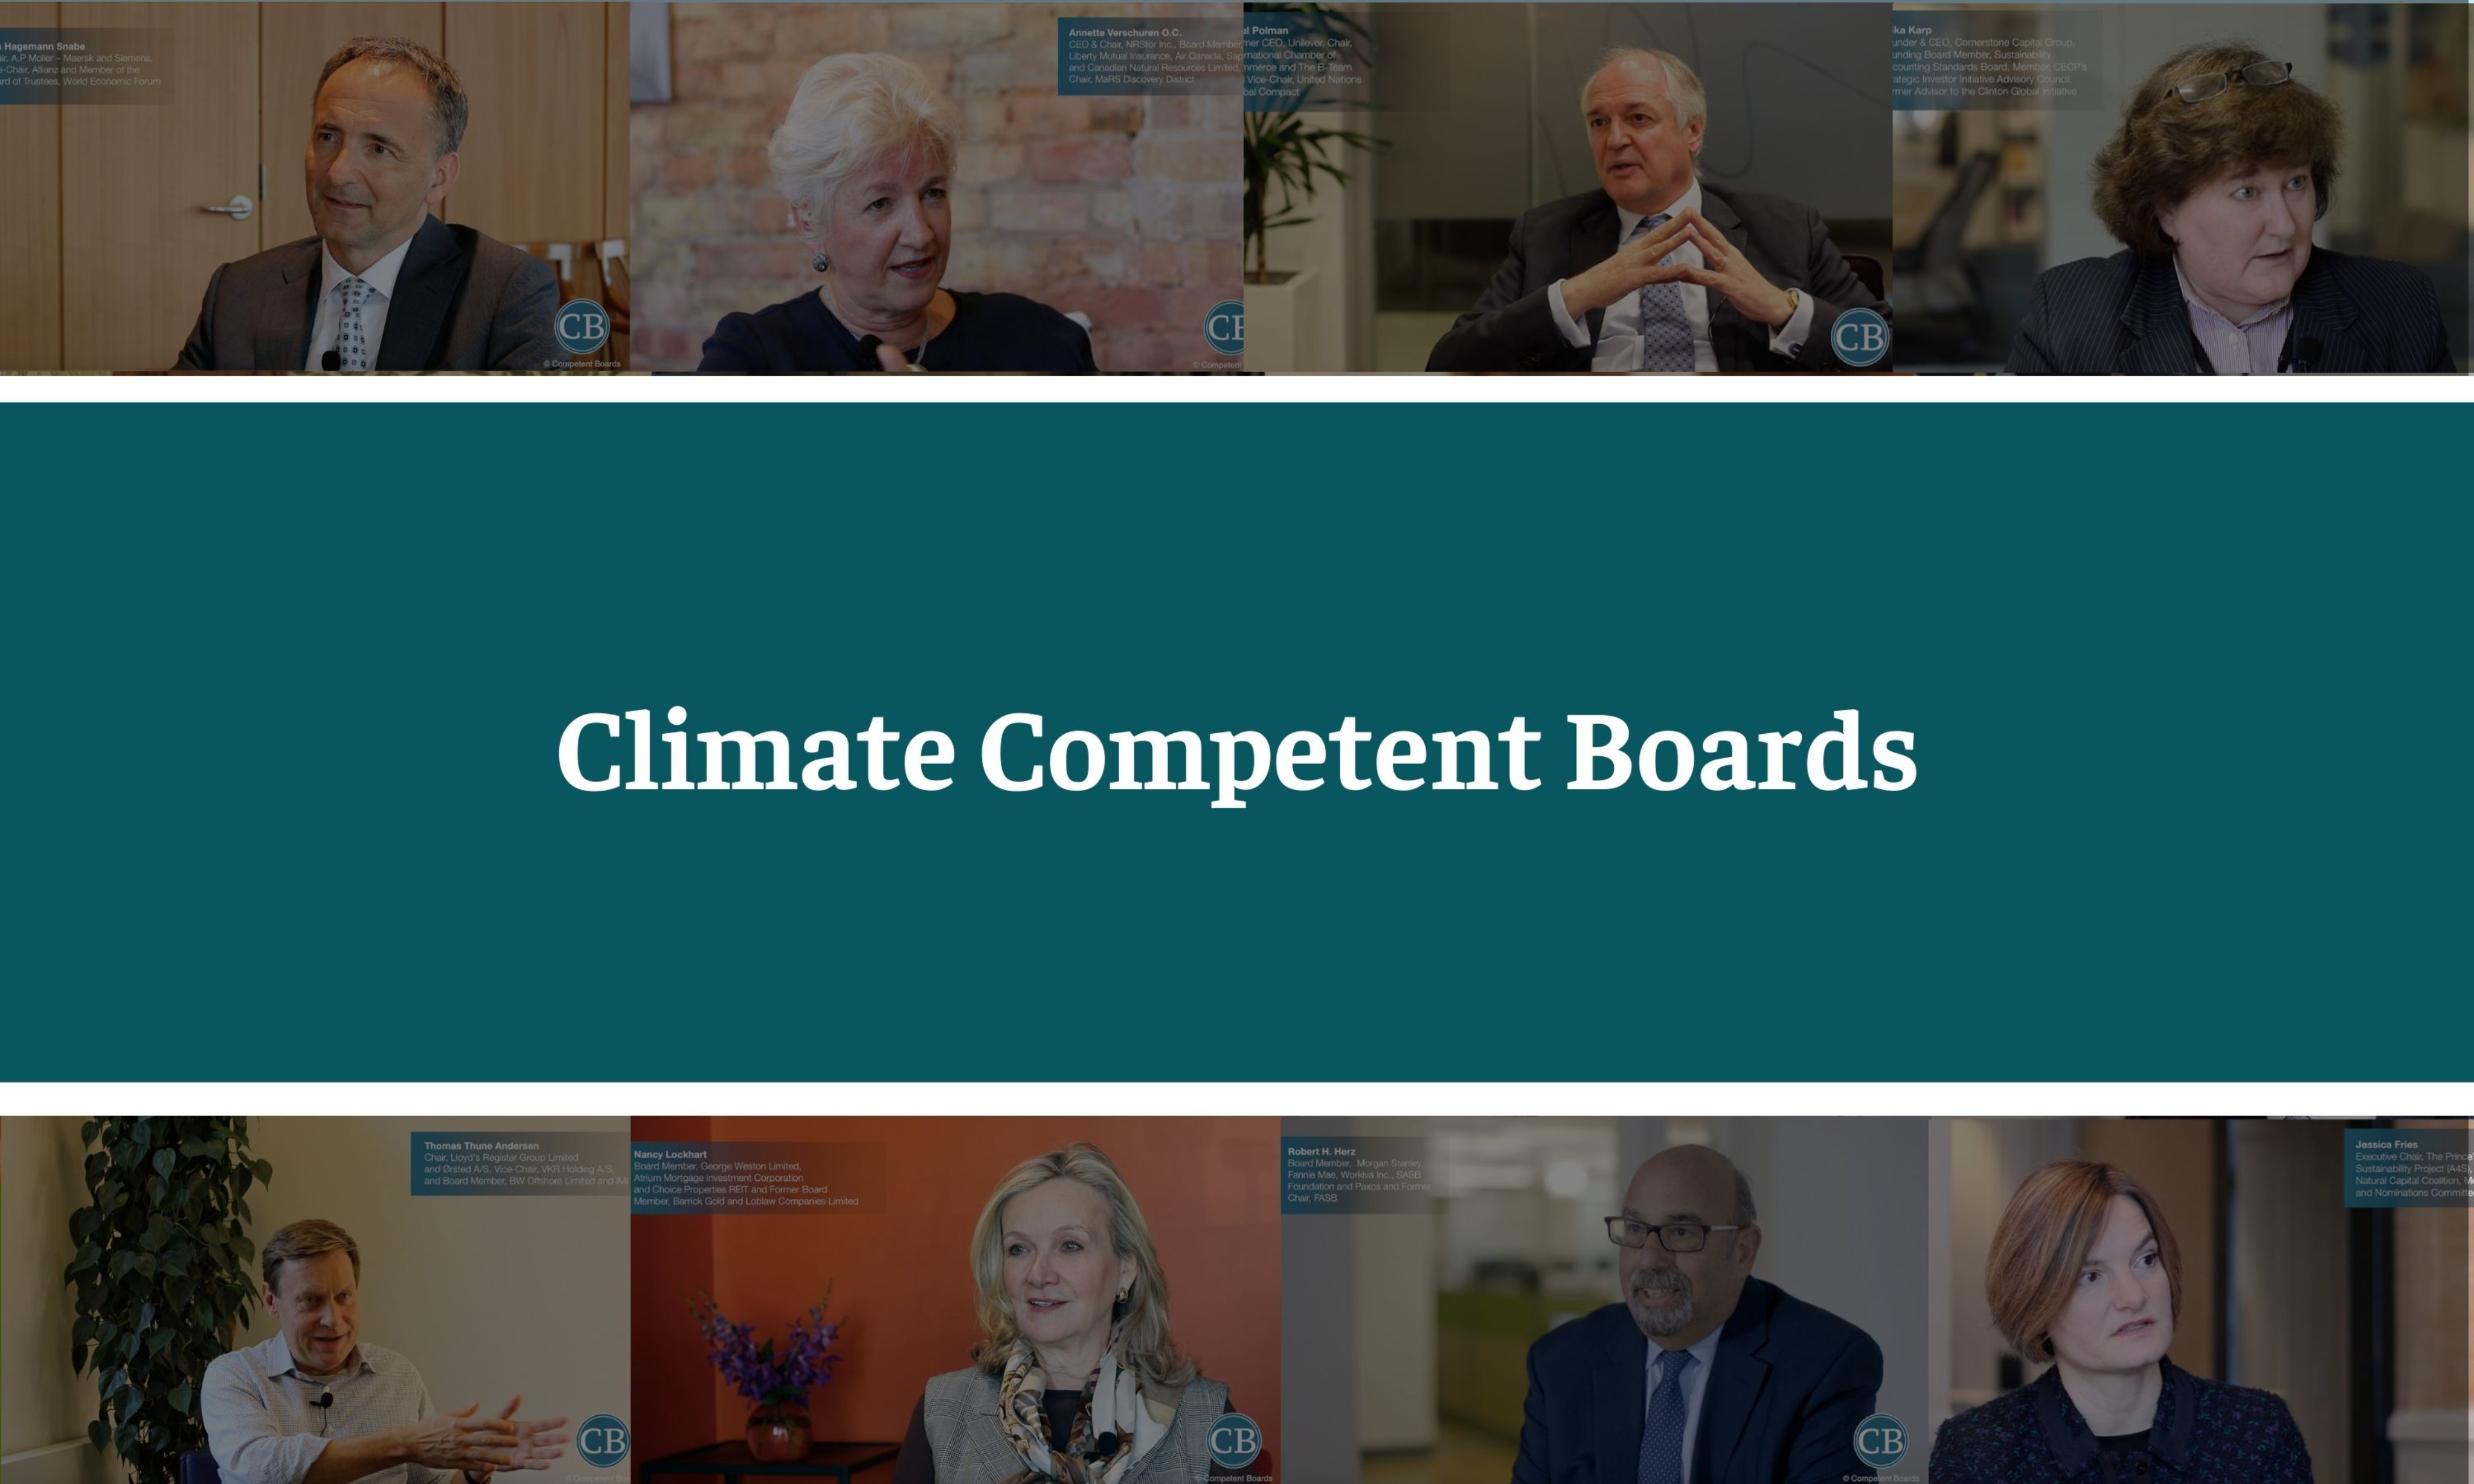 June 23rd - Climate Competent Boards - Donate to Someone in Need